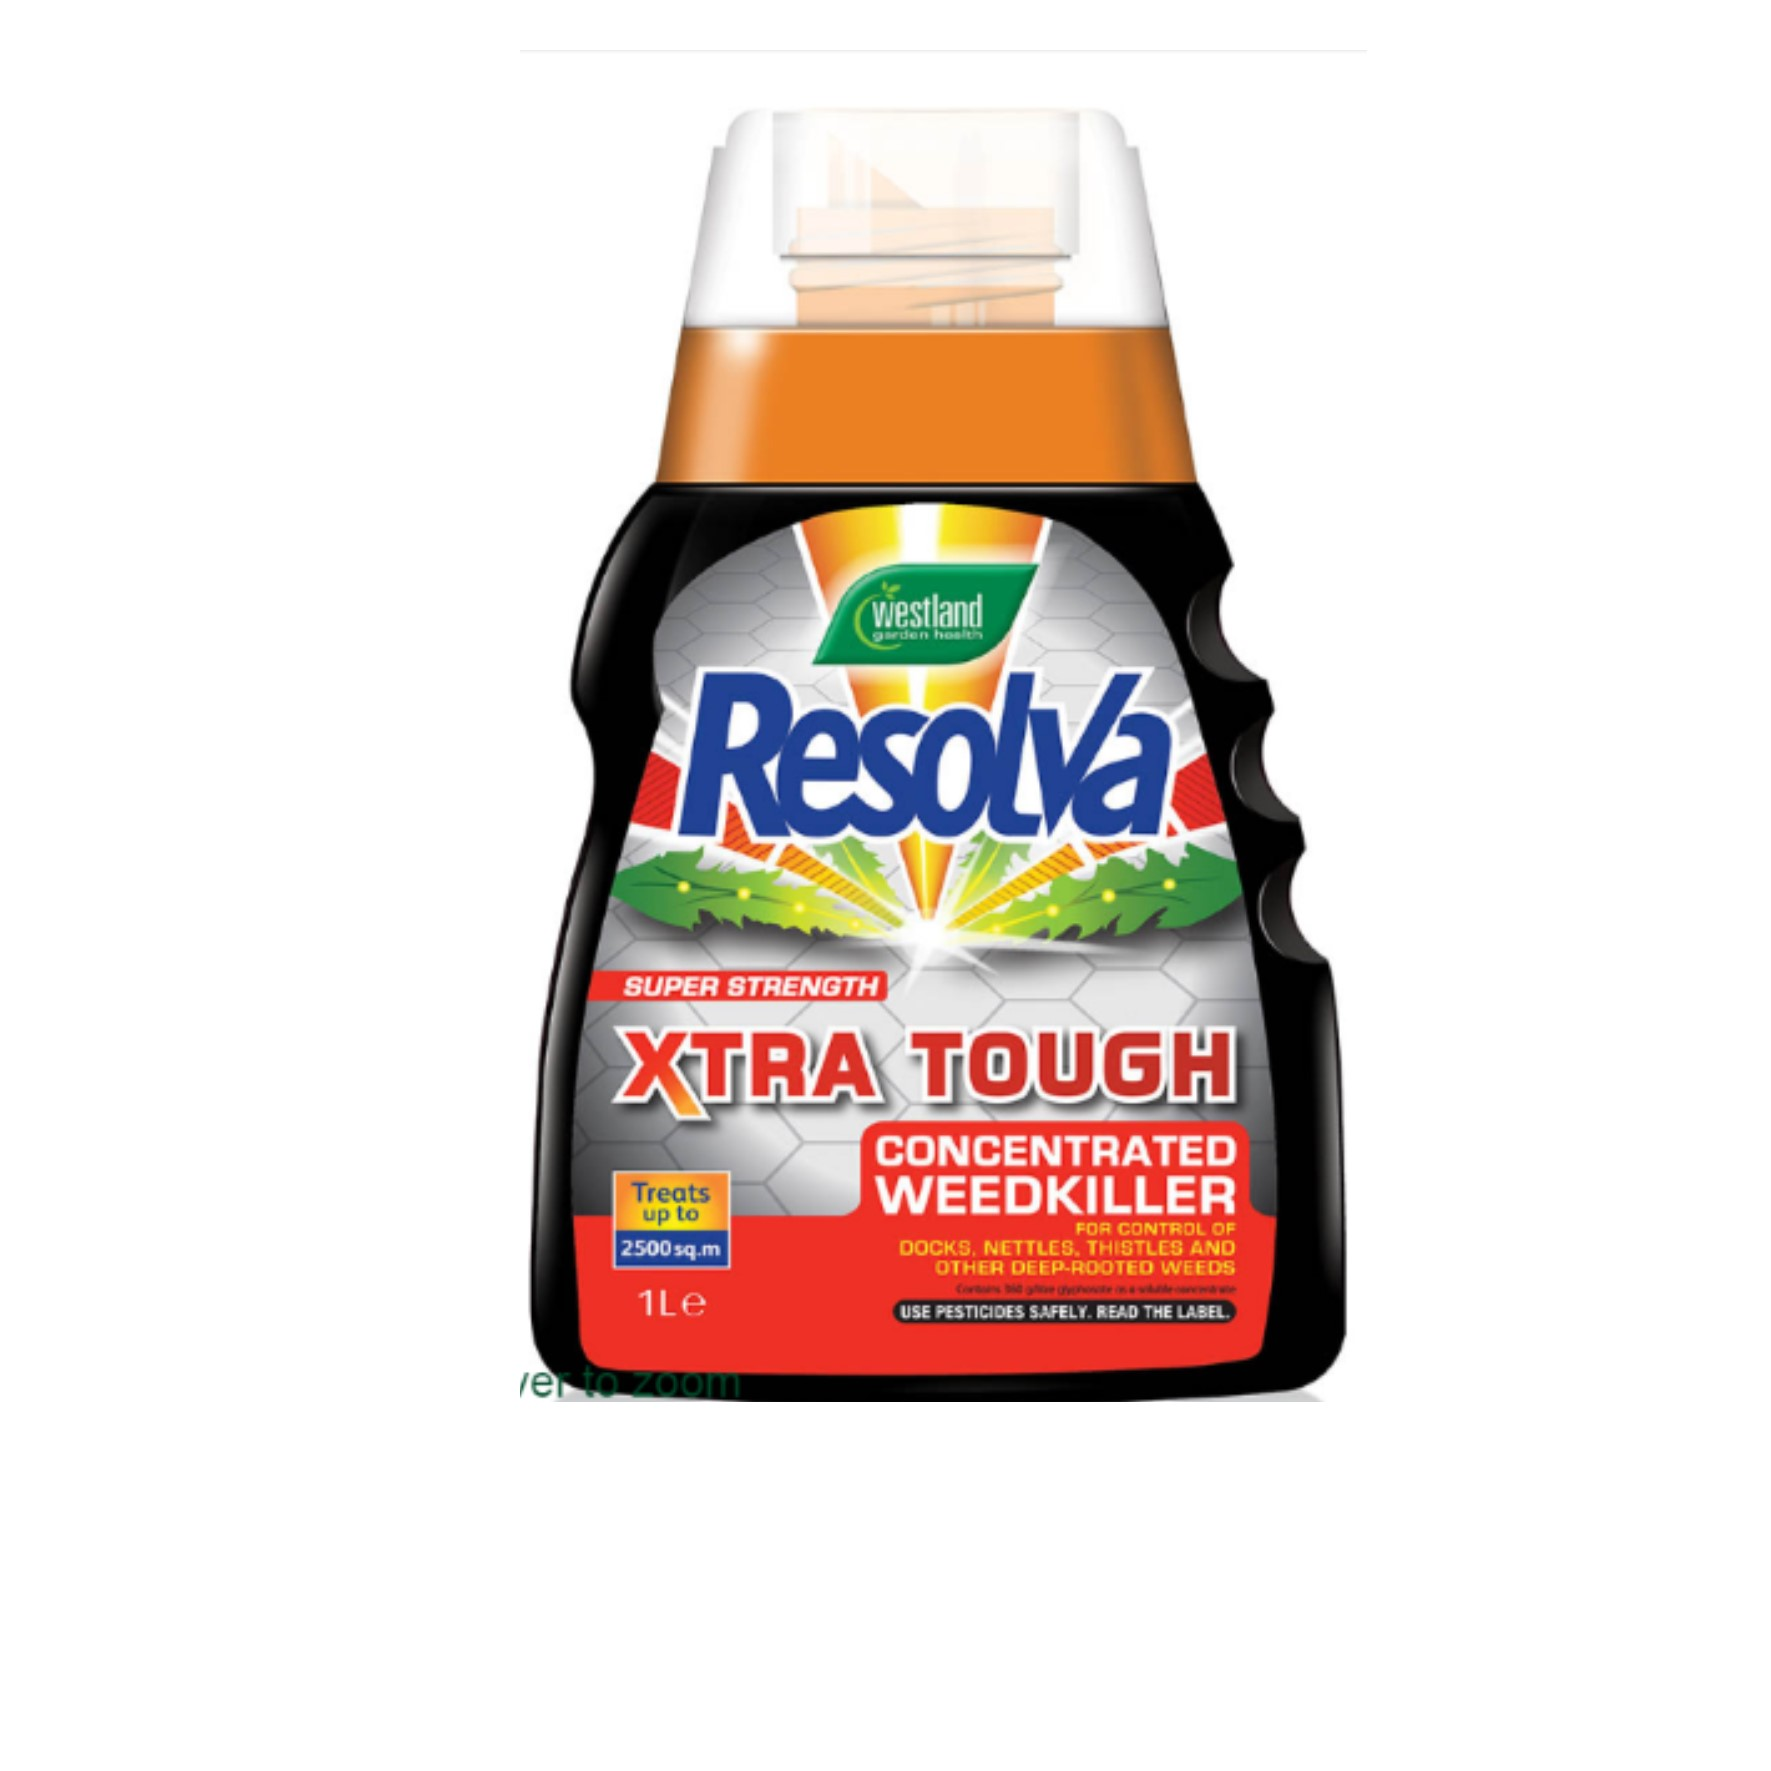 Xtra Tough Concentrated Weedkiller